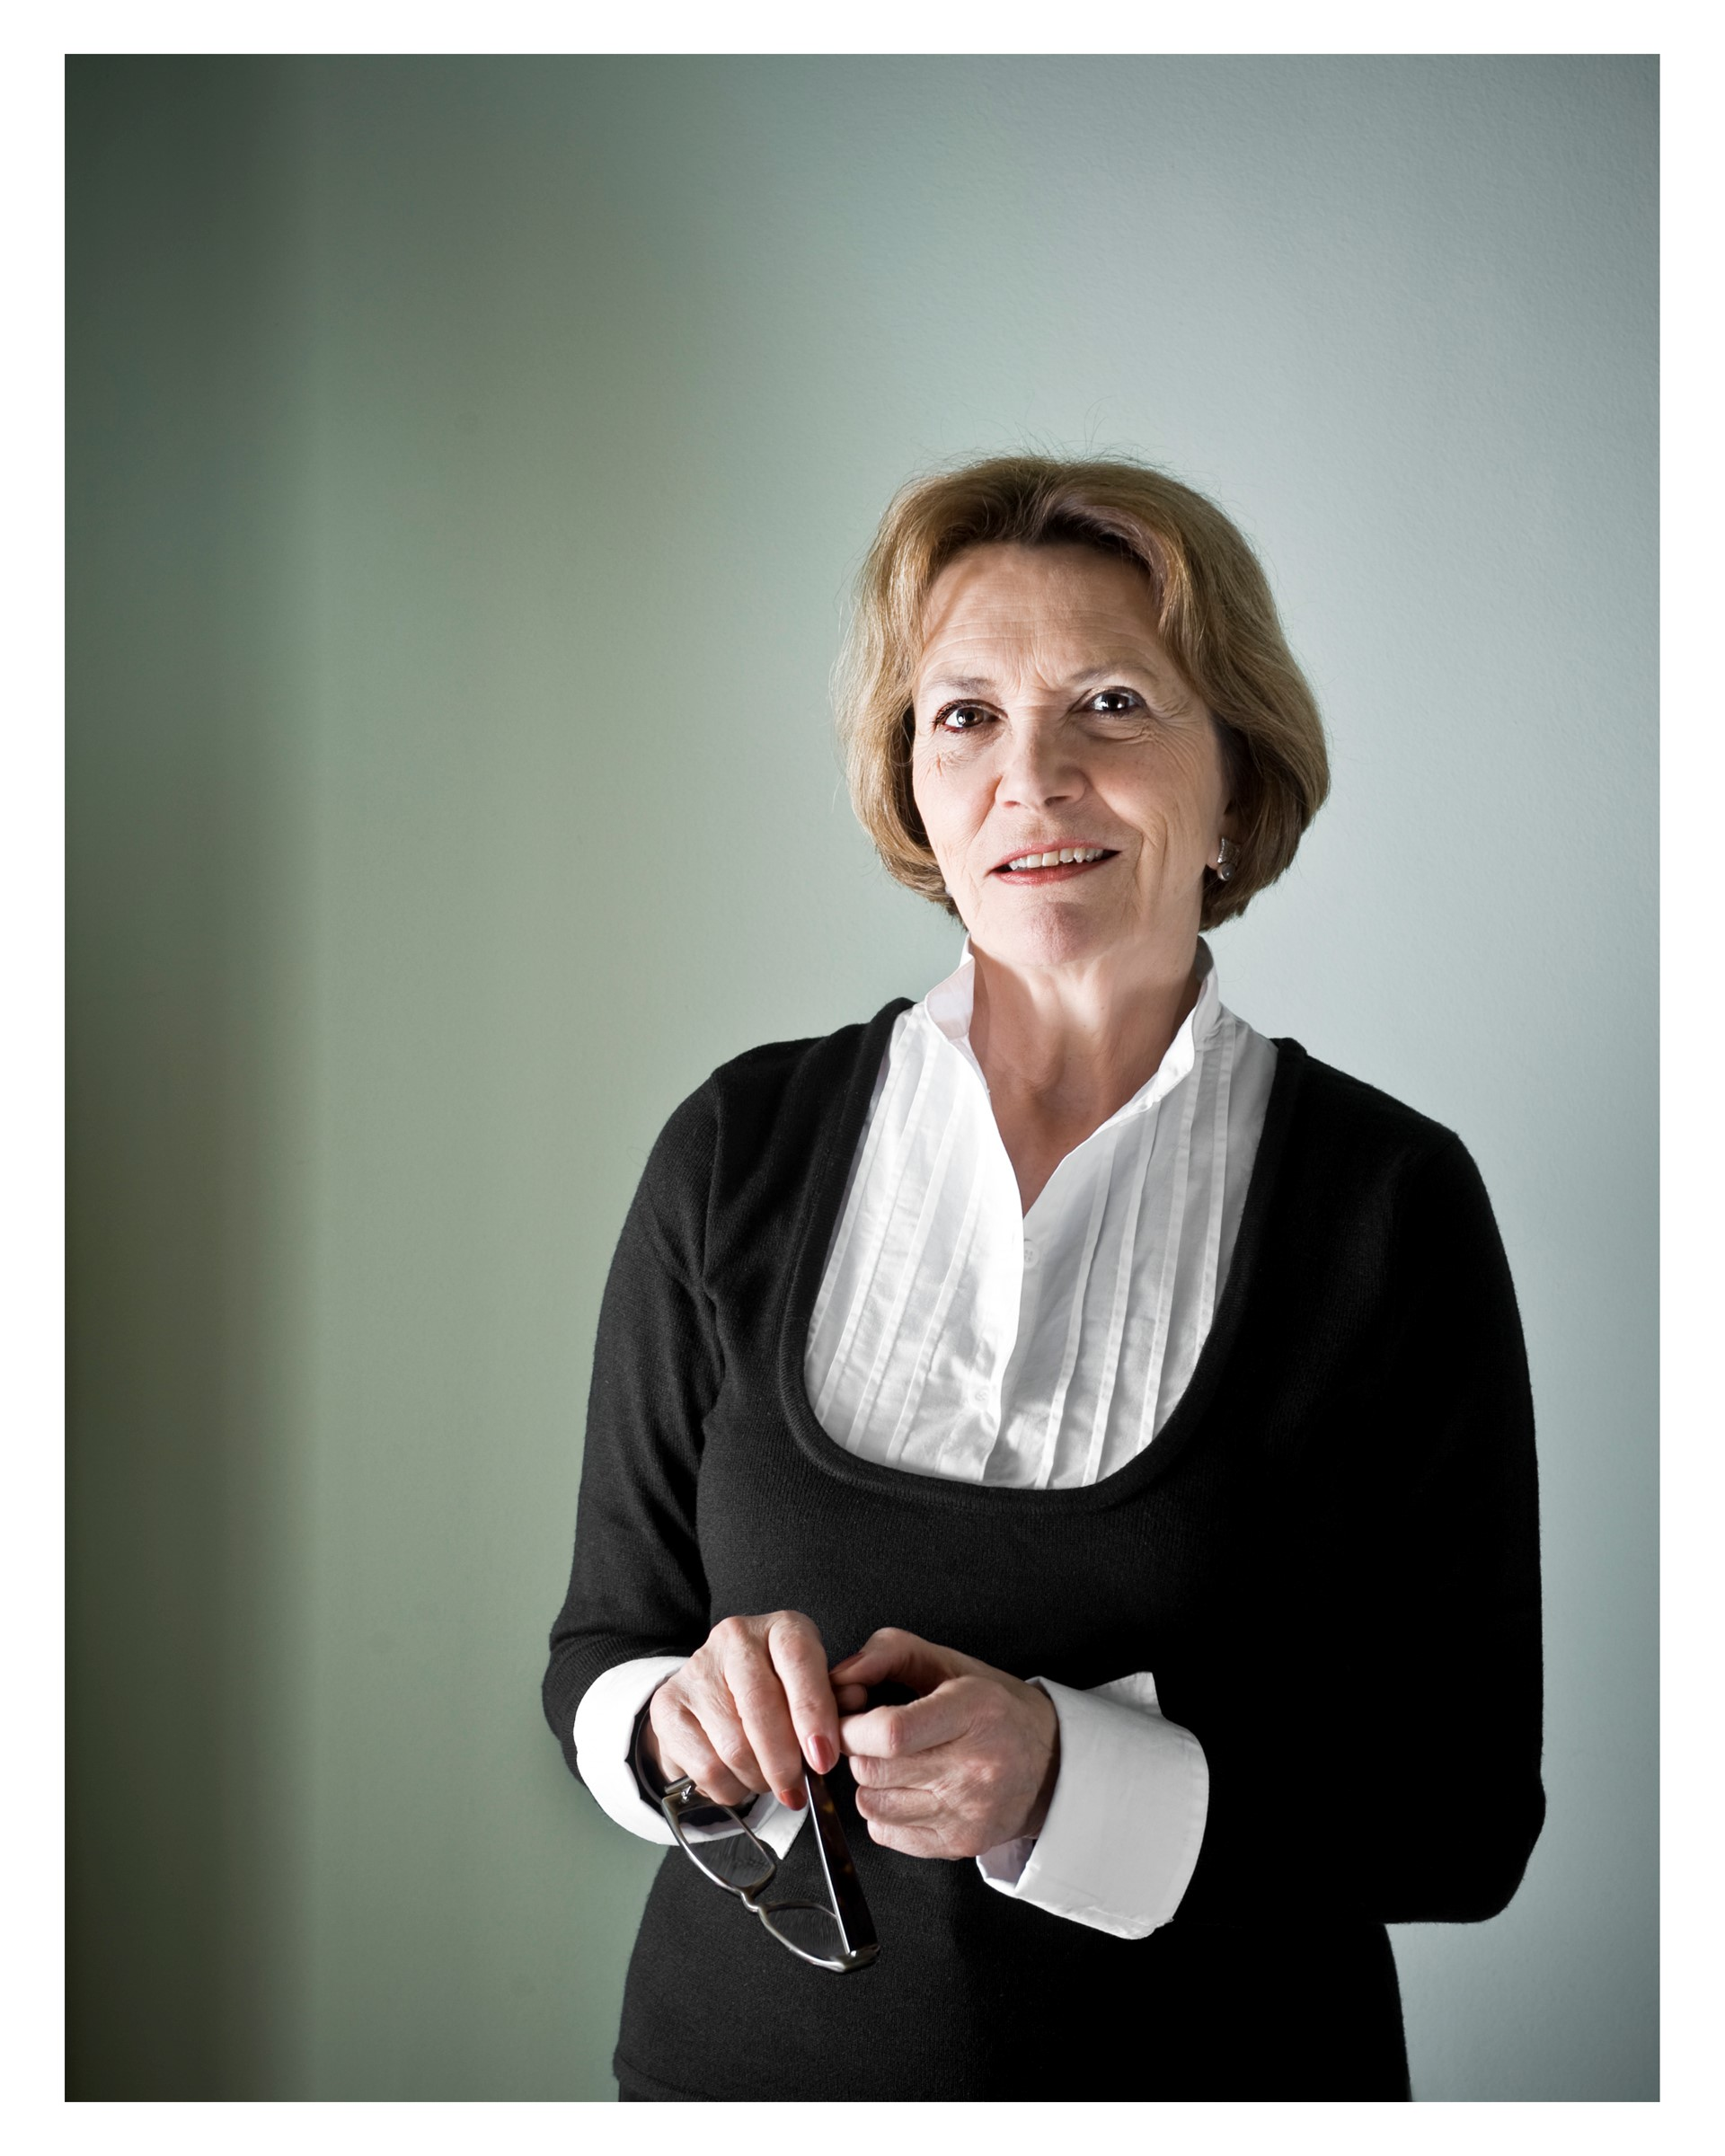 THE BIG INTERVIEW: Joan Bakewell talks the County Gazette ahead of her appearance at the Tacchi-Morris Theatre in Taunton